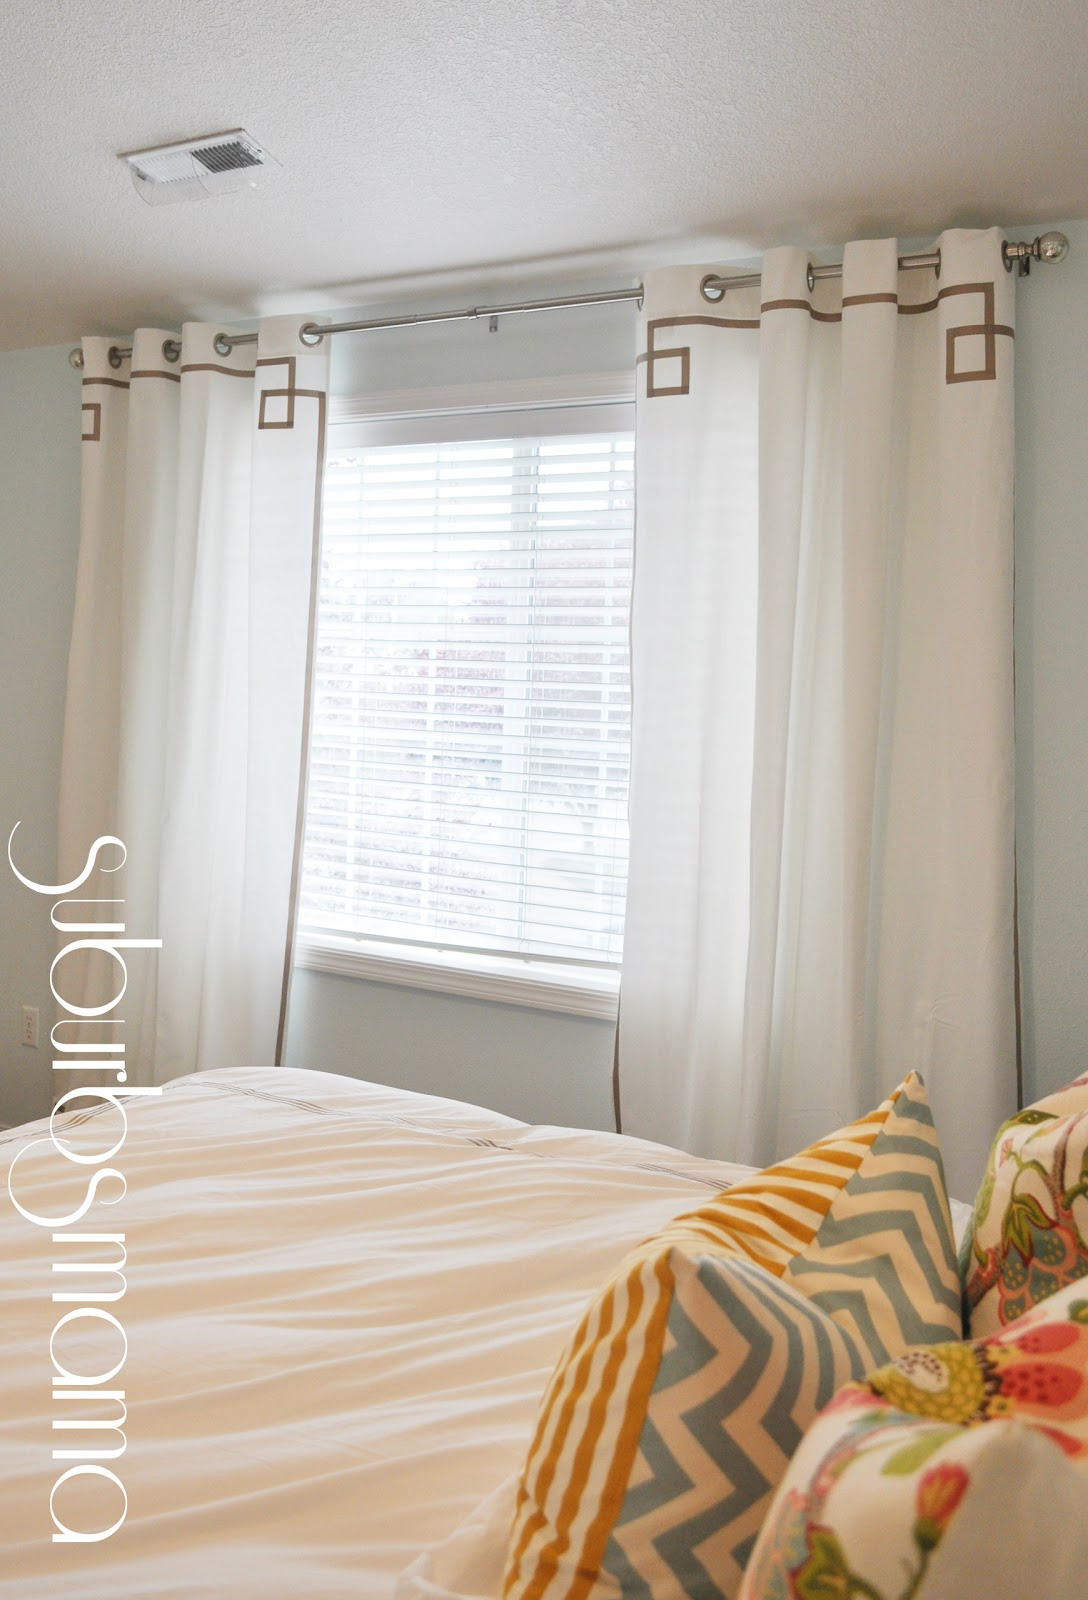 Master bedroom curtains - Master Bedroom Curtains